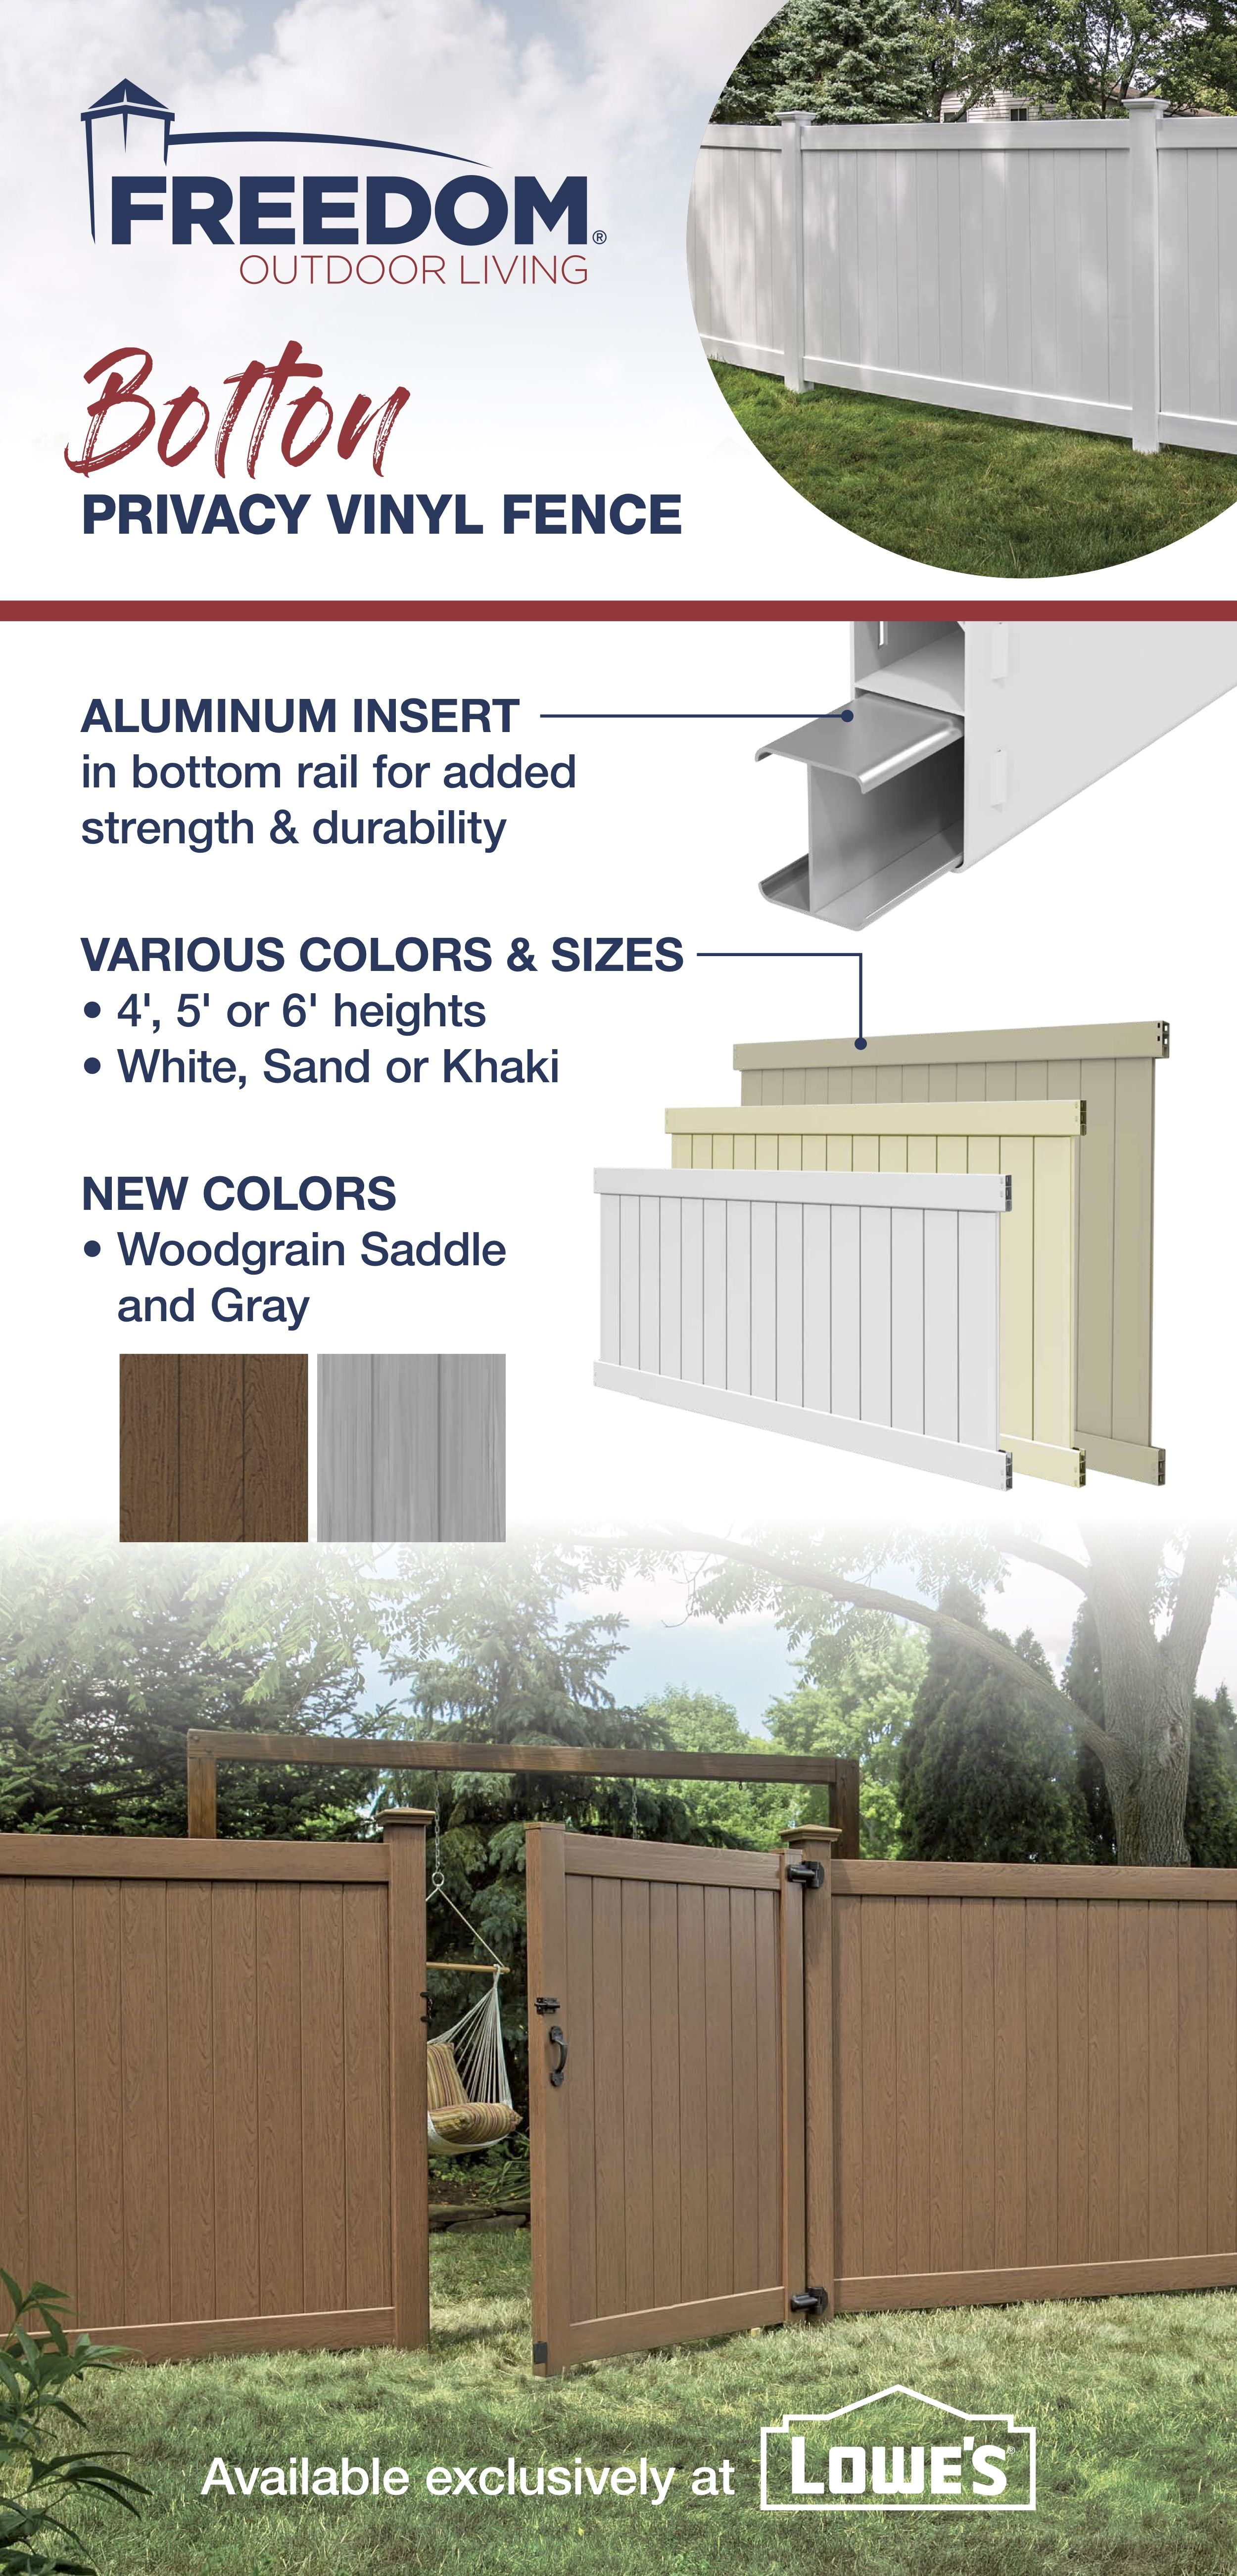 Bolton Vinyl Fencing With Images Vinyl Privacy Fence Vinyl